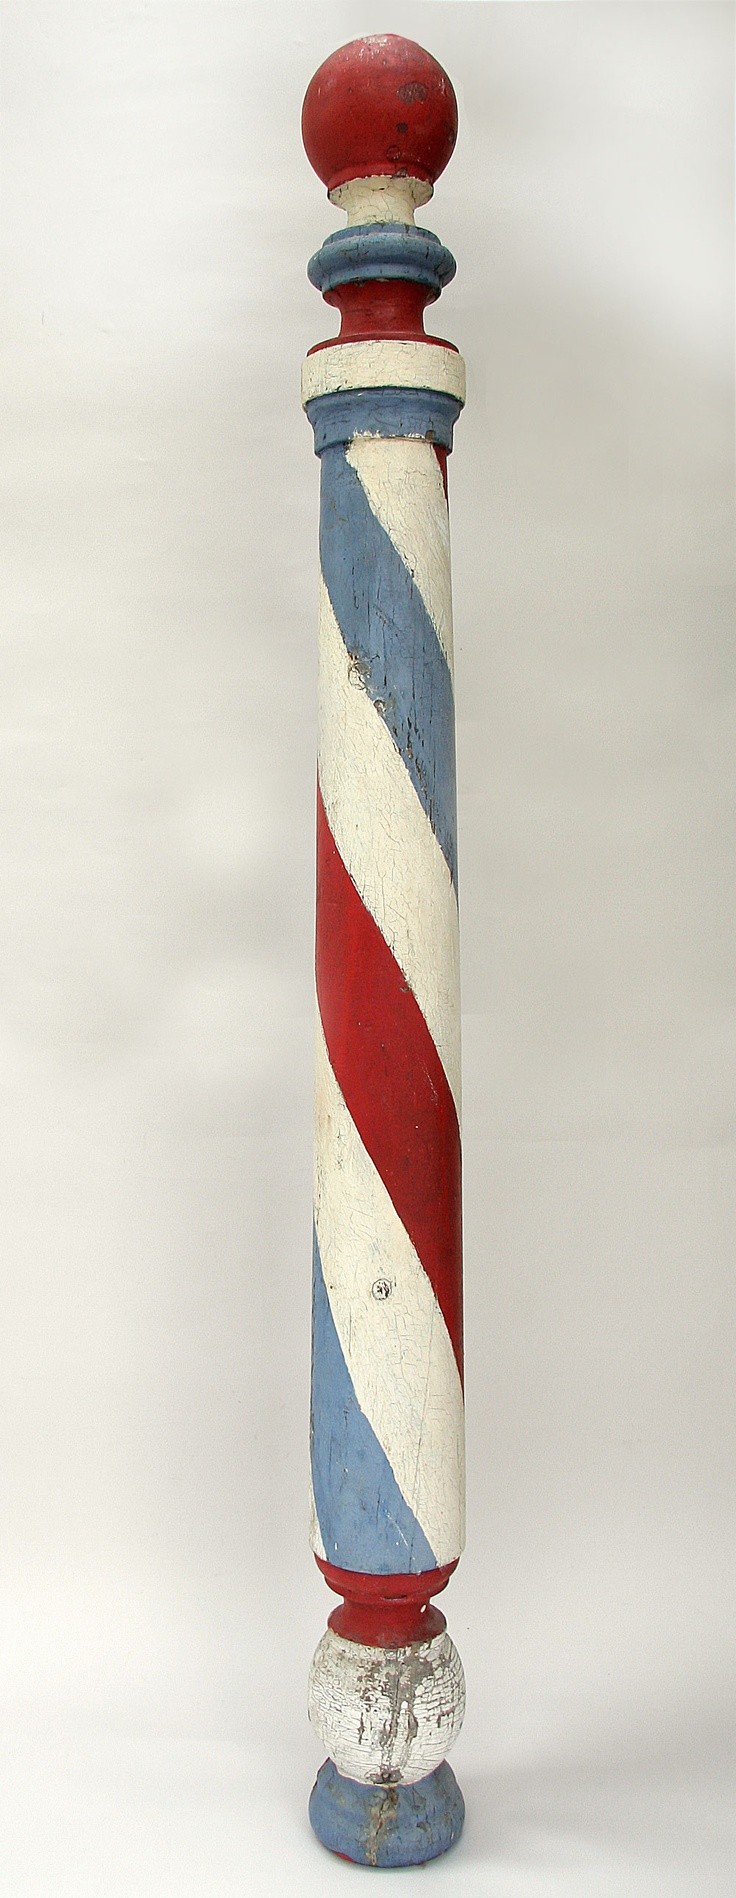 Barber shop pole distressed wall decal vintage style wall decor ebay - Antique Painted Americana Wooden Barber Pole Trade Sign Yes I Know It S Not Air Mail Par Avion But It Fits With This Board